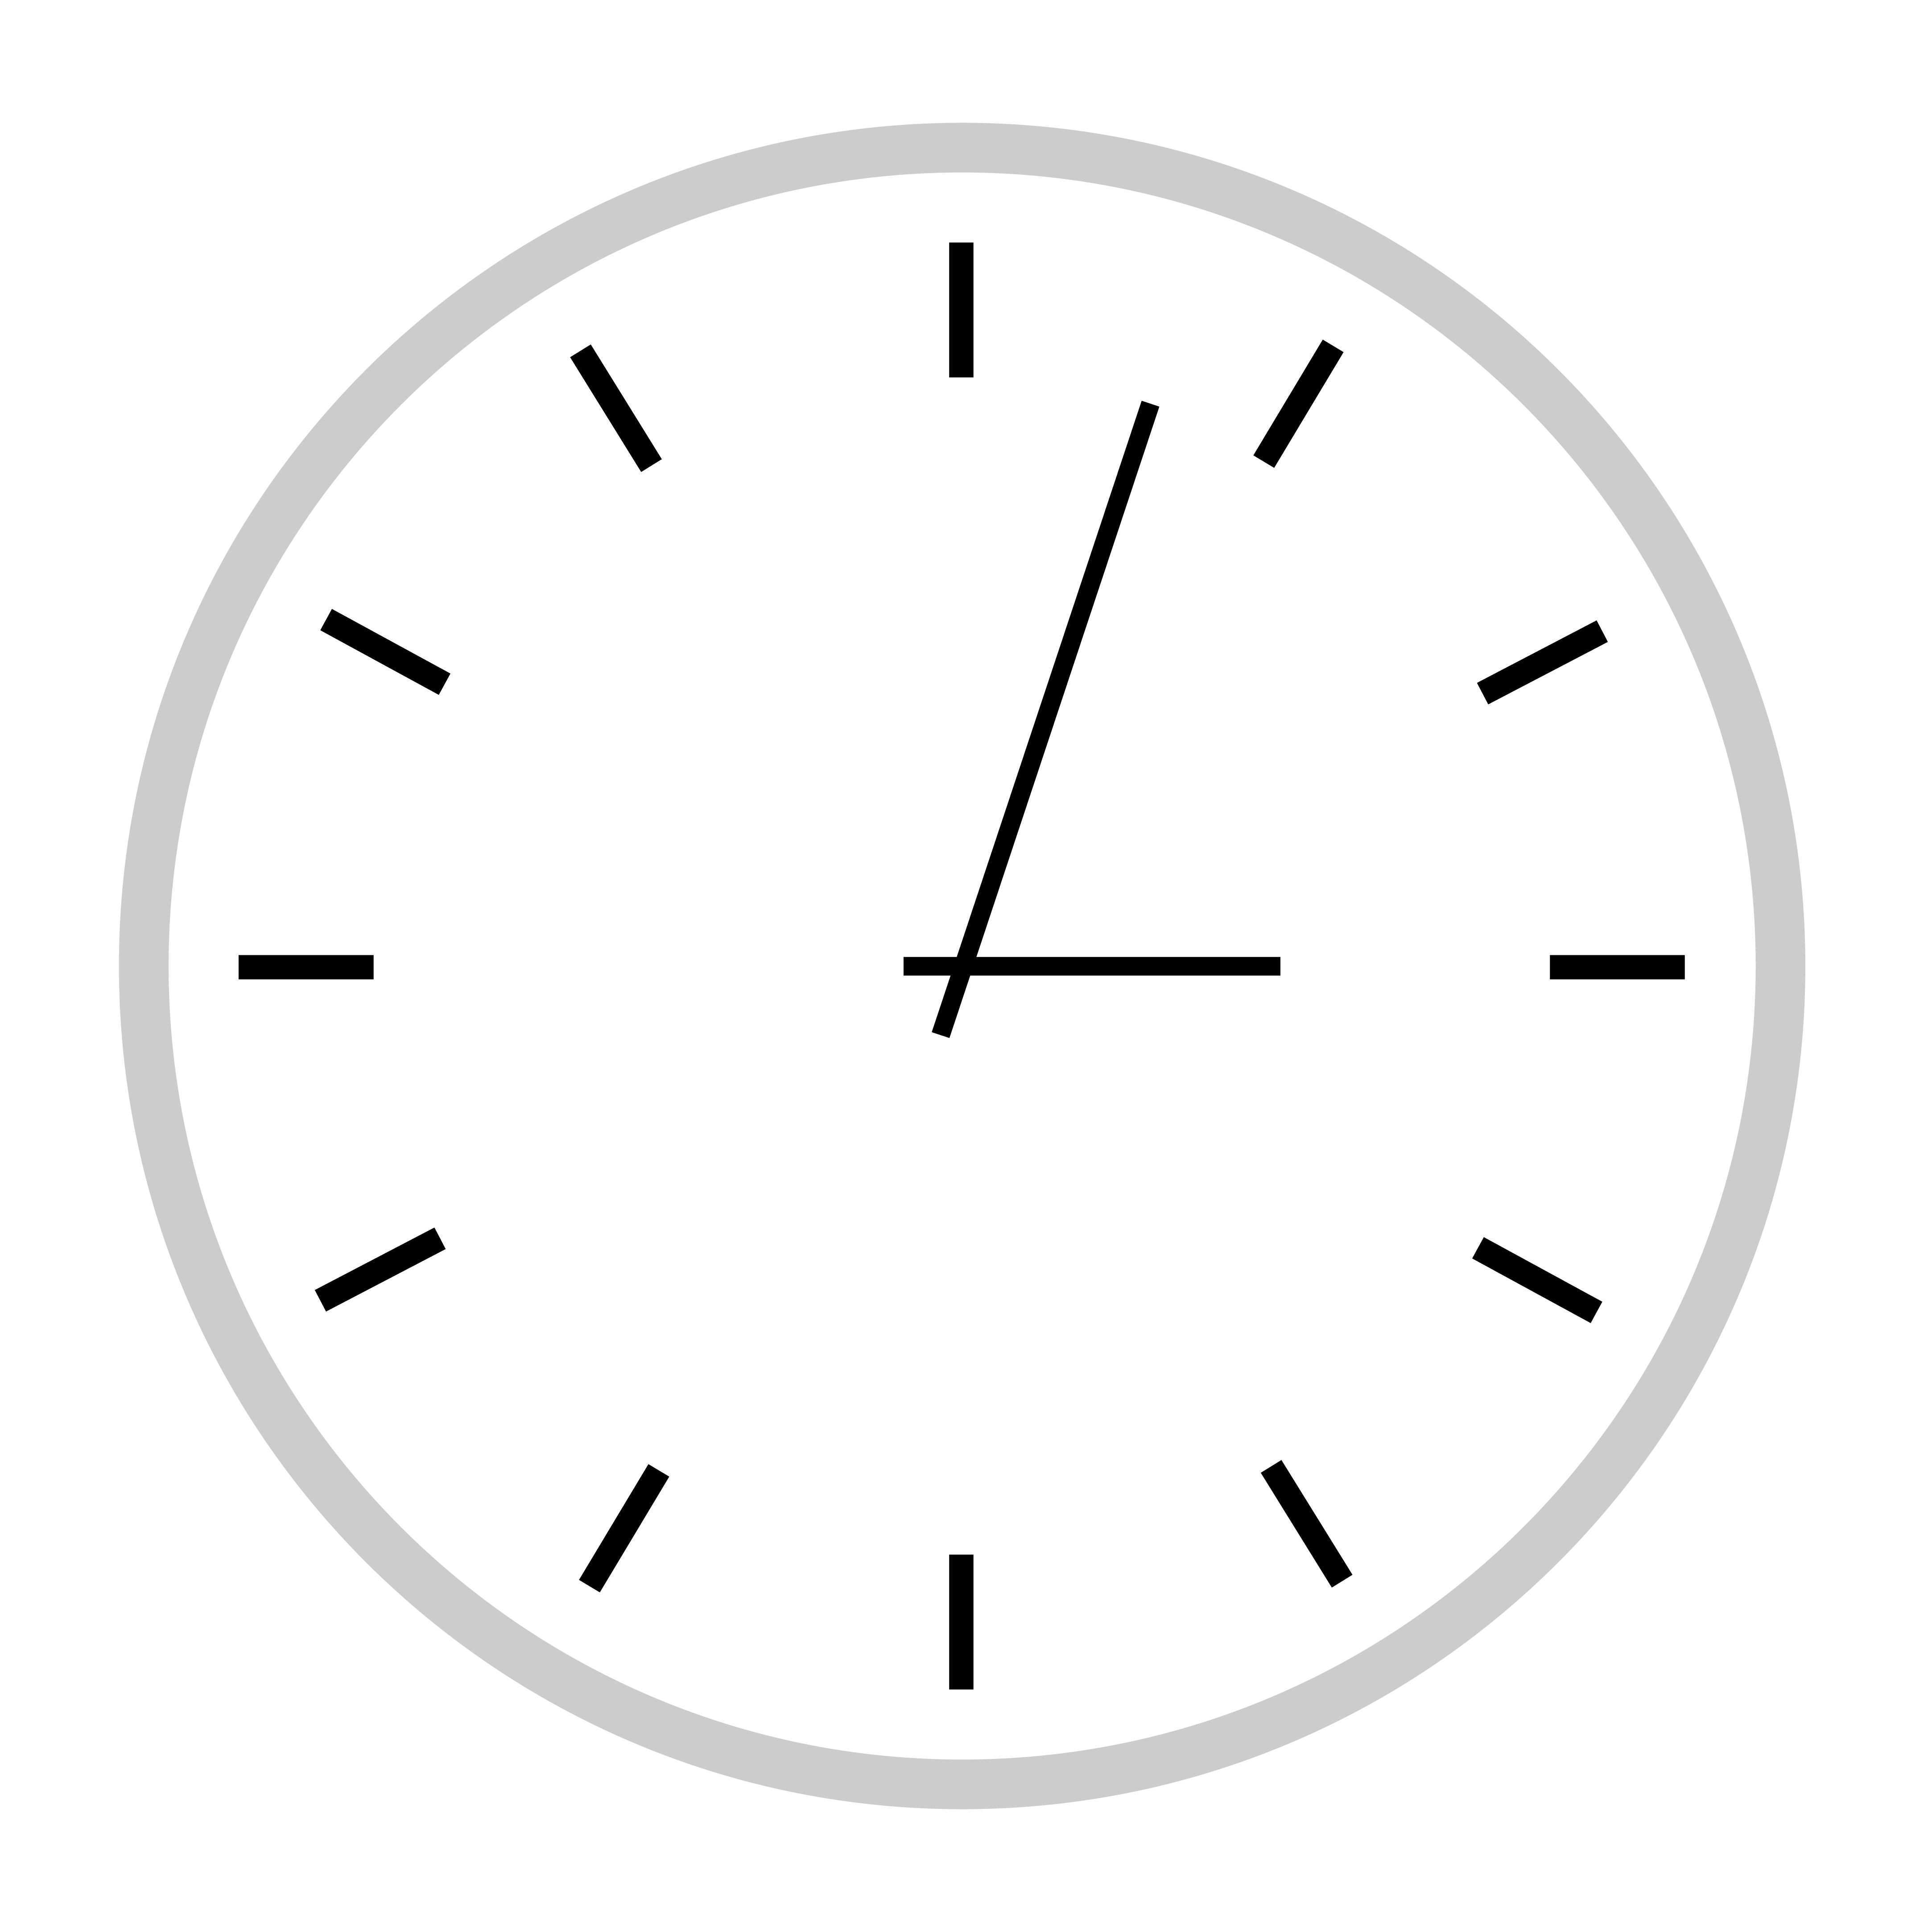 Clocks-Time-02.png